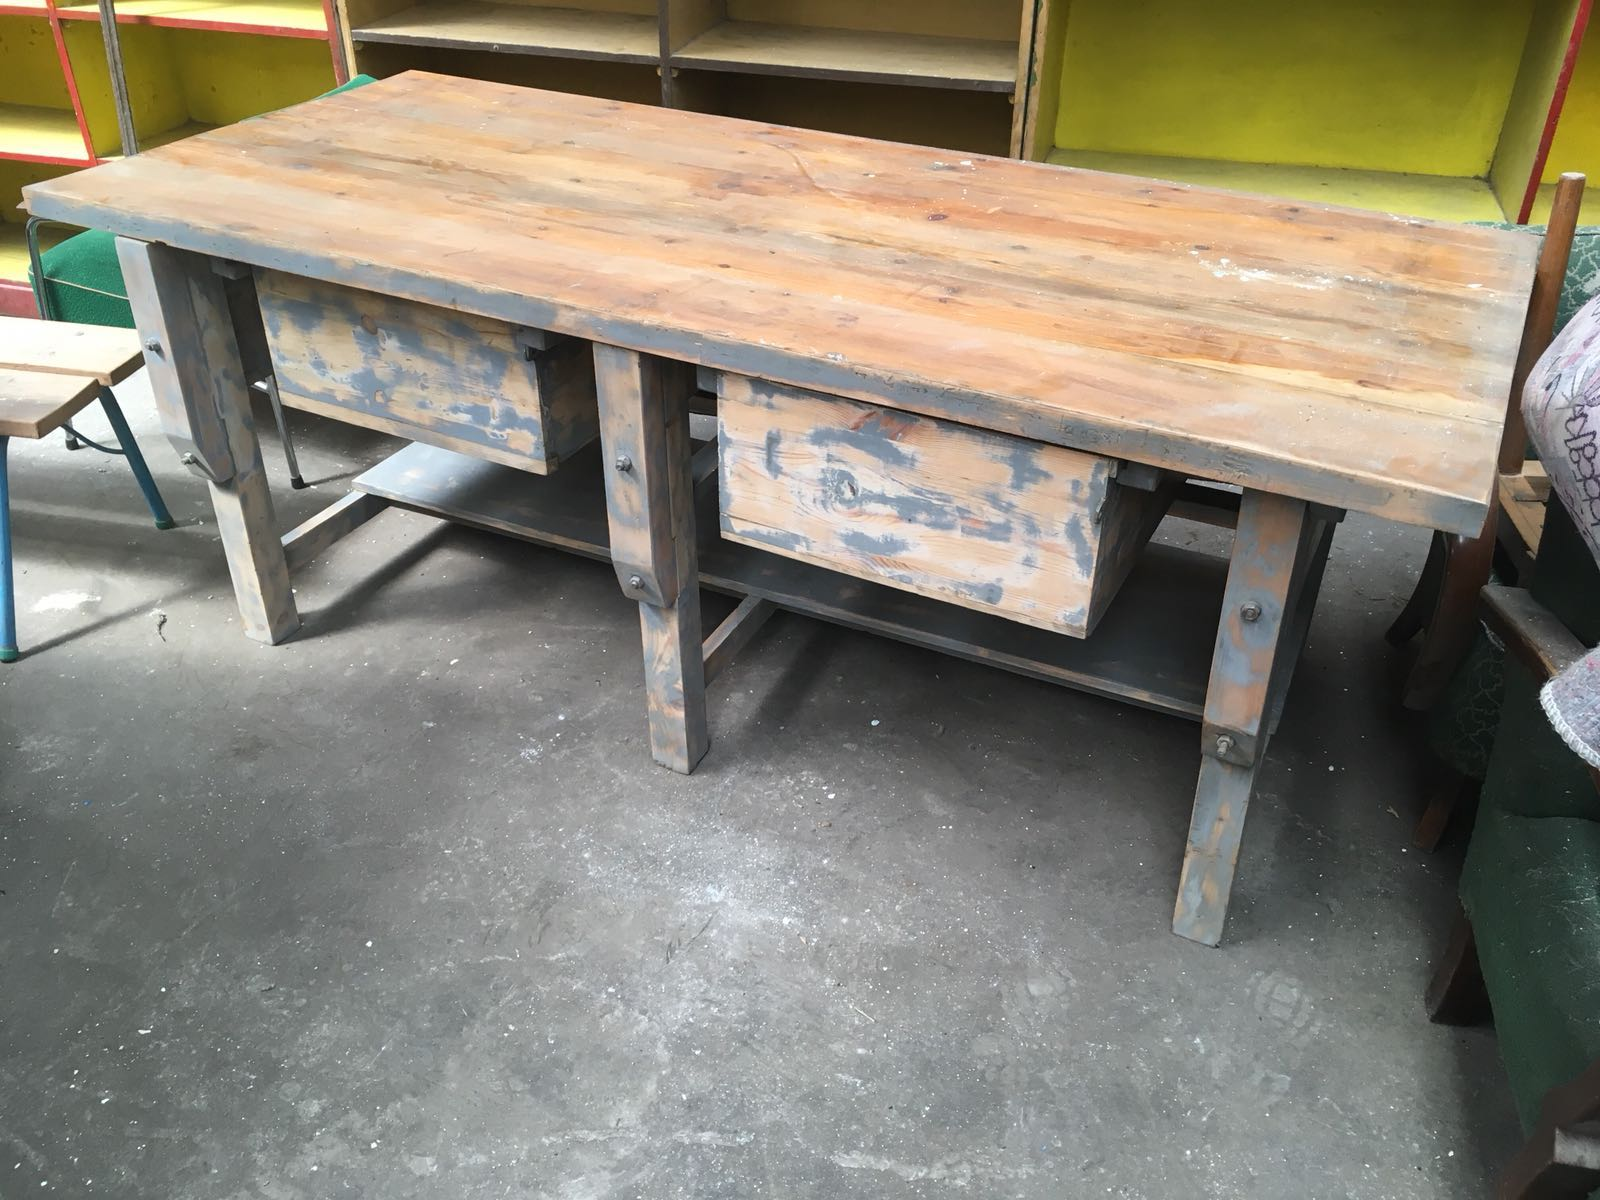 Vintage industrial European workbench table counter  kitchen island 2.0mt #2274